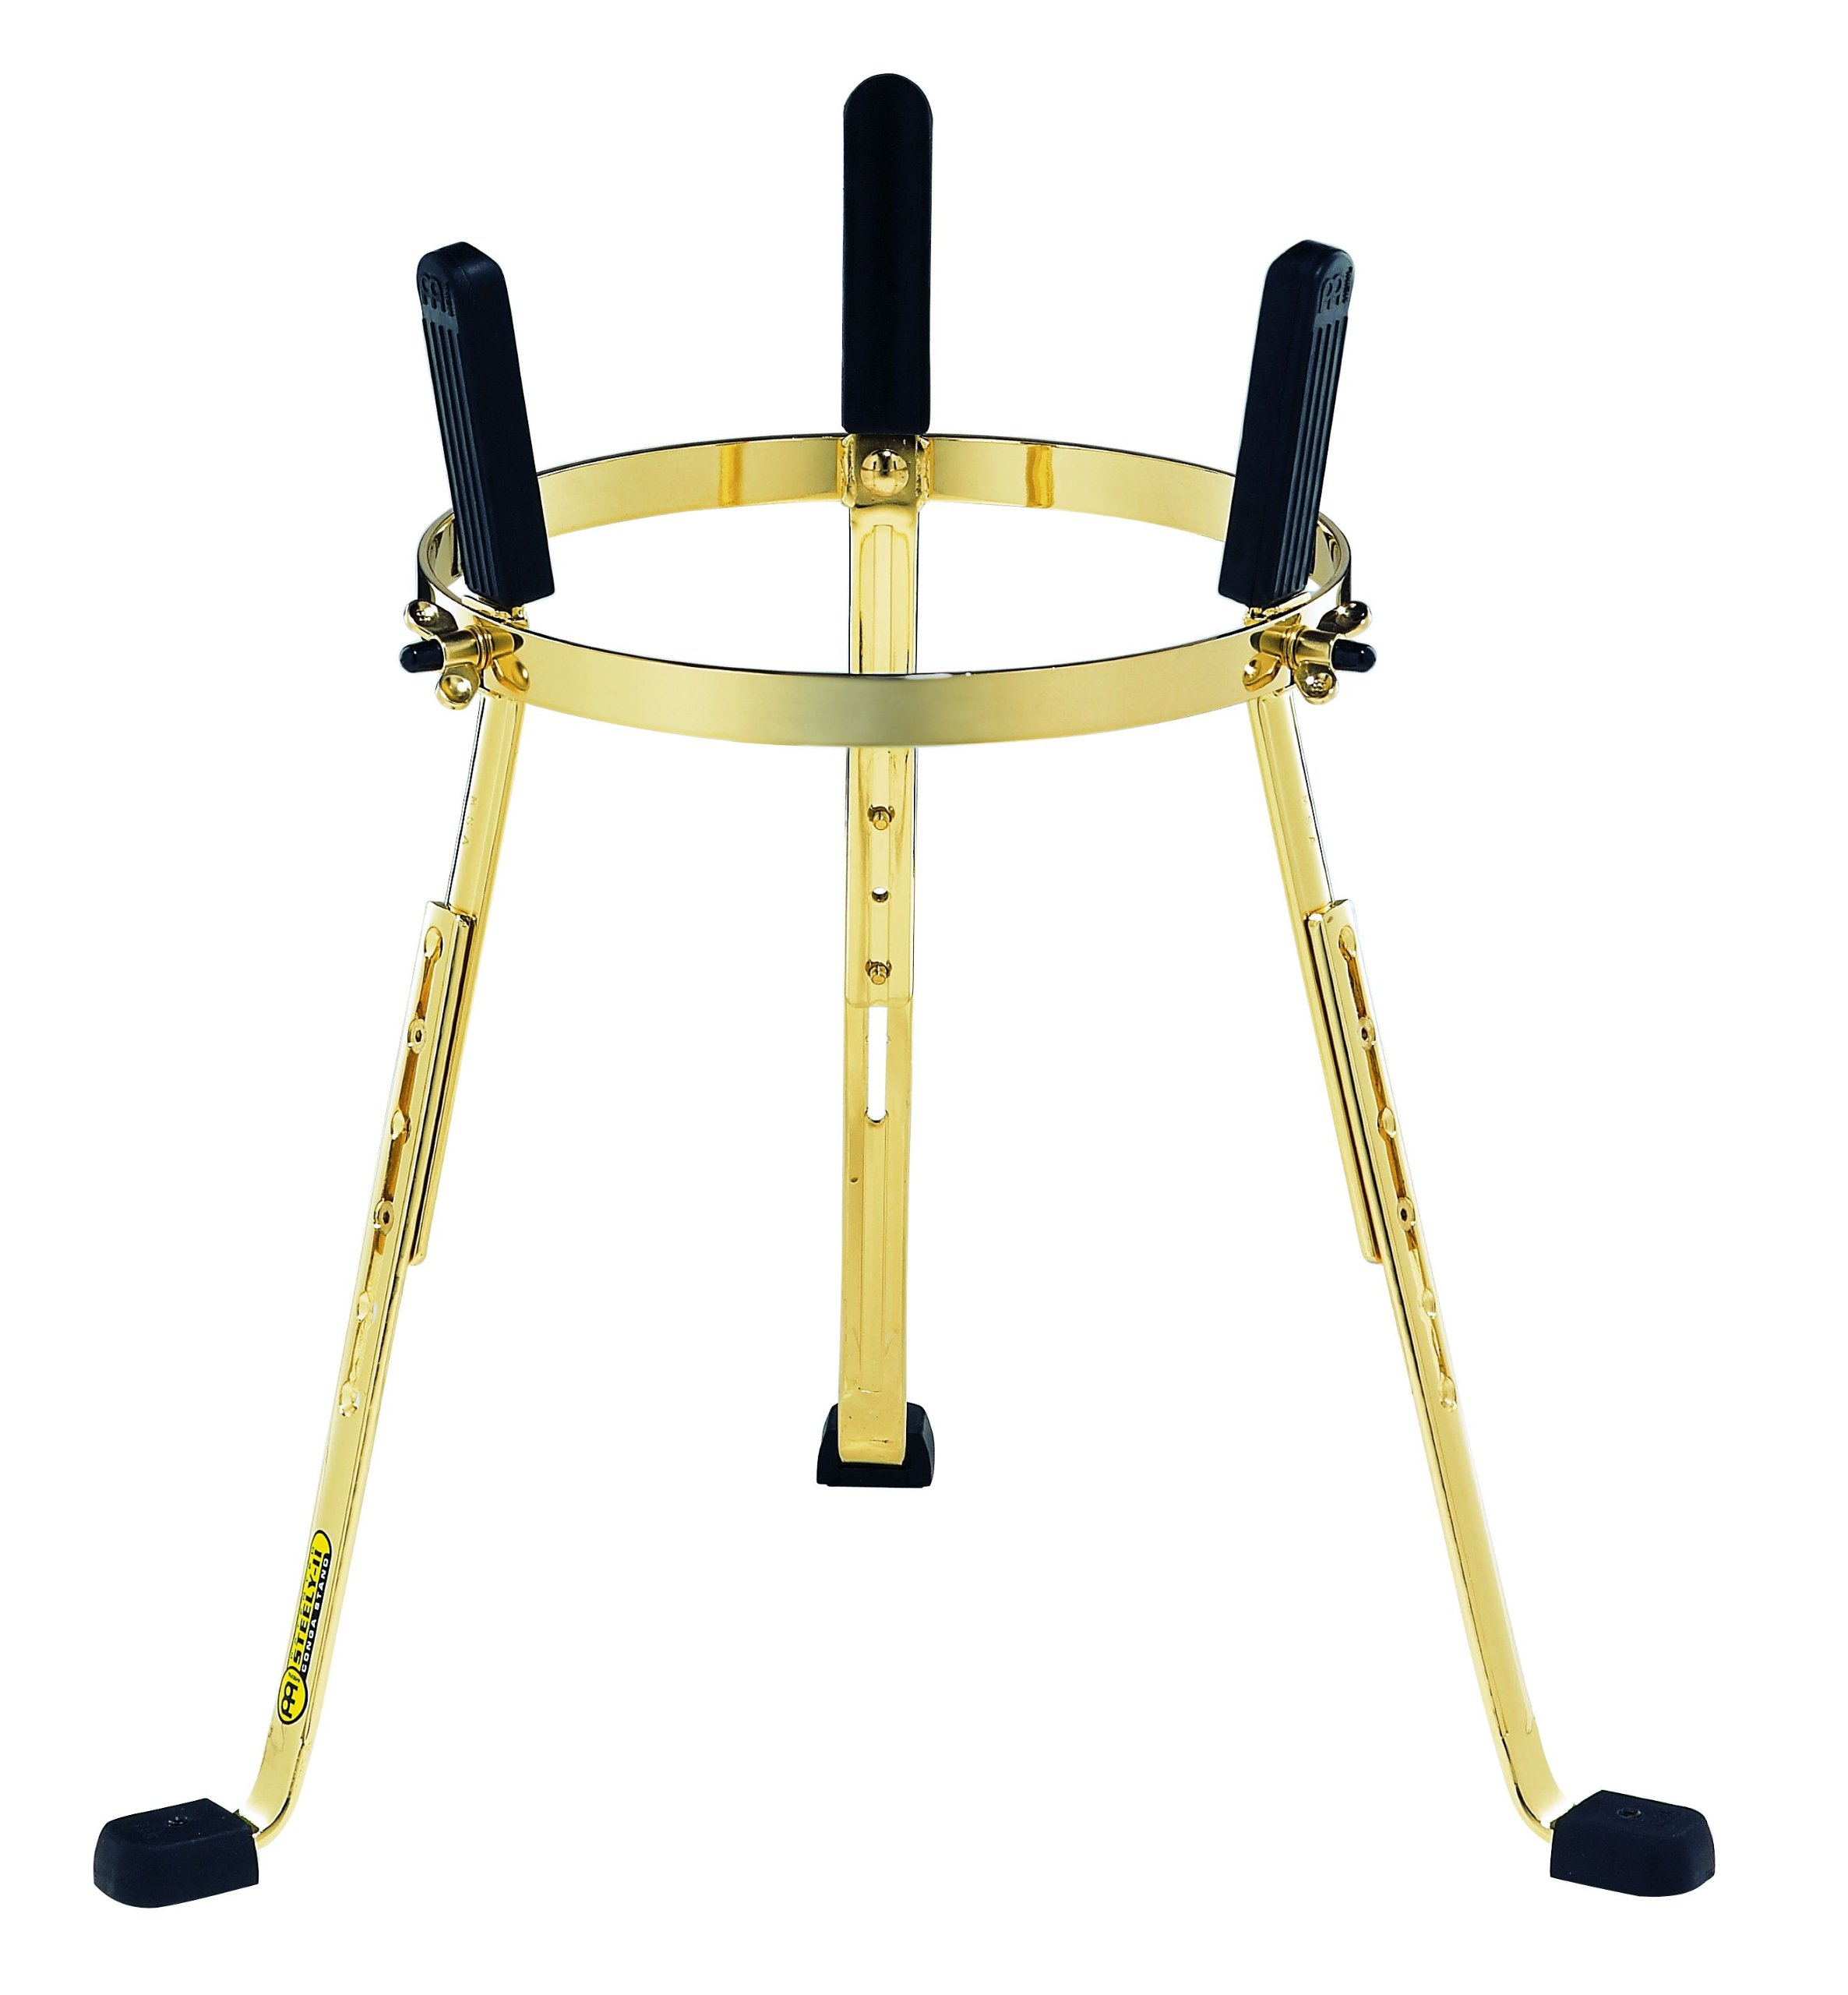 Meinl Percussion ST-MSA1212G Steely II Height Adjustable Stand for 12-Inch MEINL Professional Congas, Gold Tone